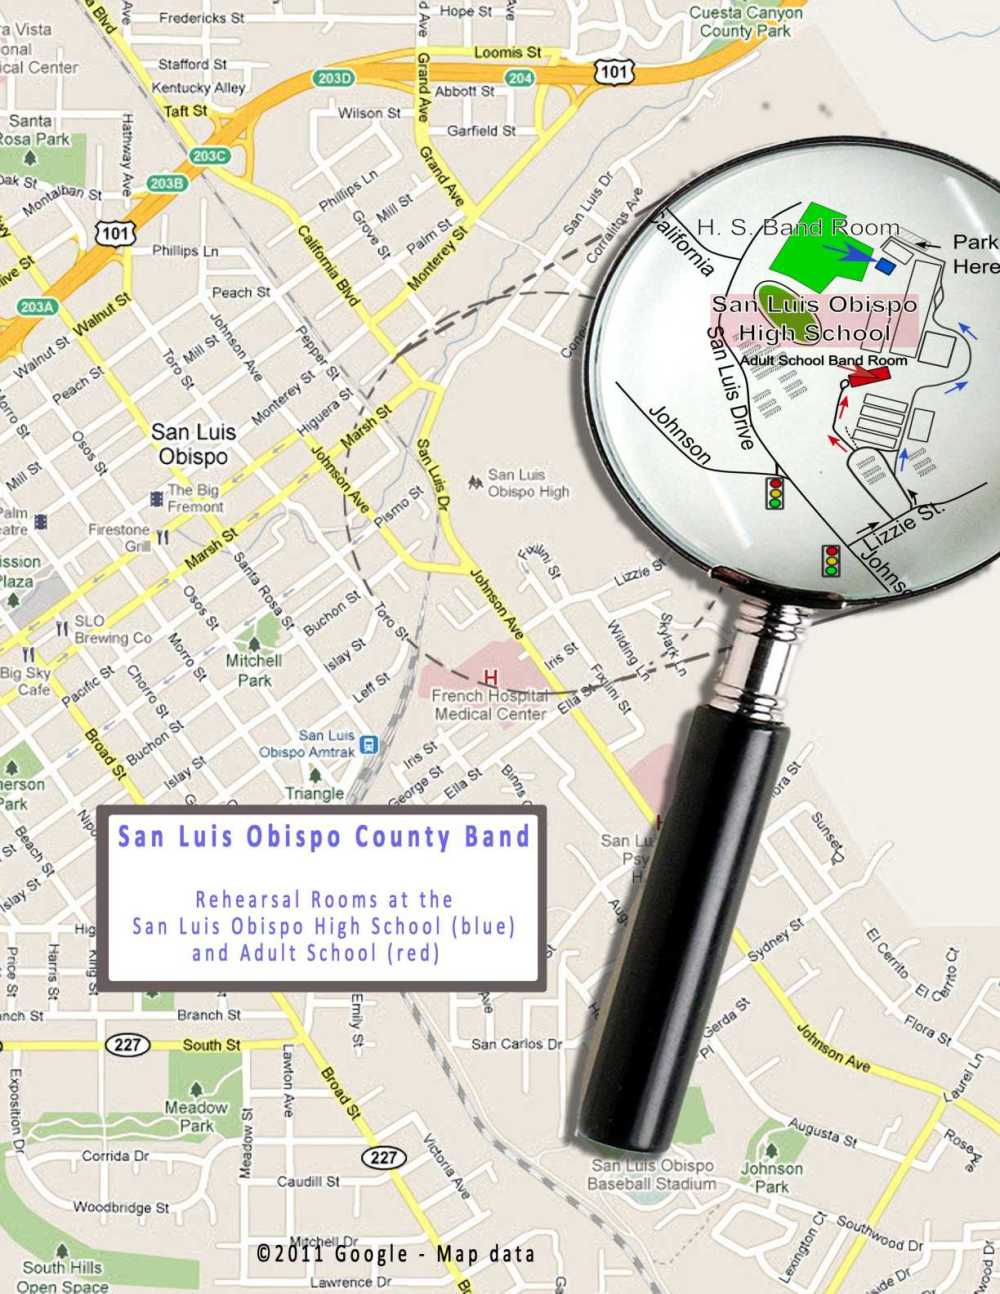 medium resolution of click here to see a detail that shows the location of the rehearsal rooms